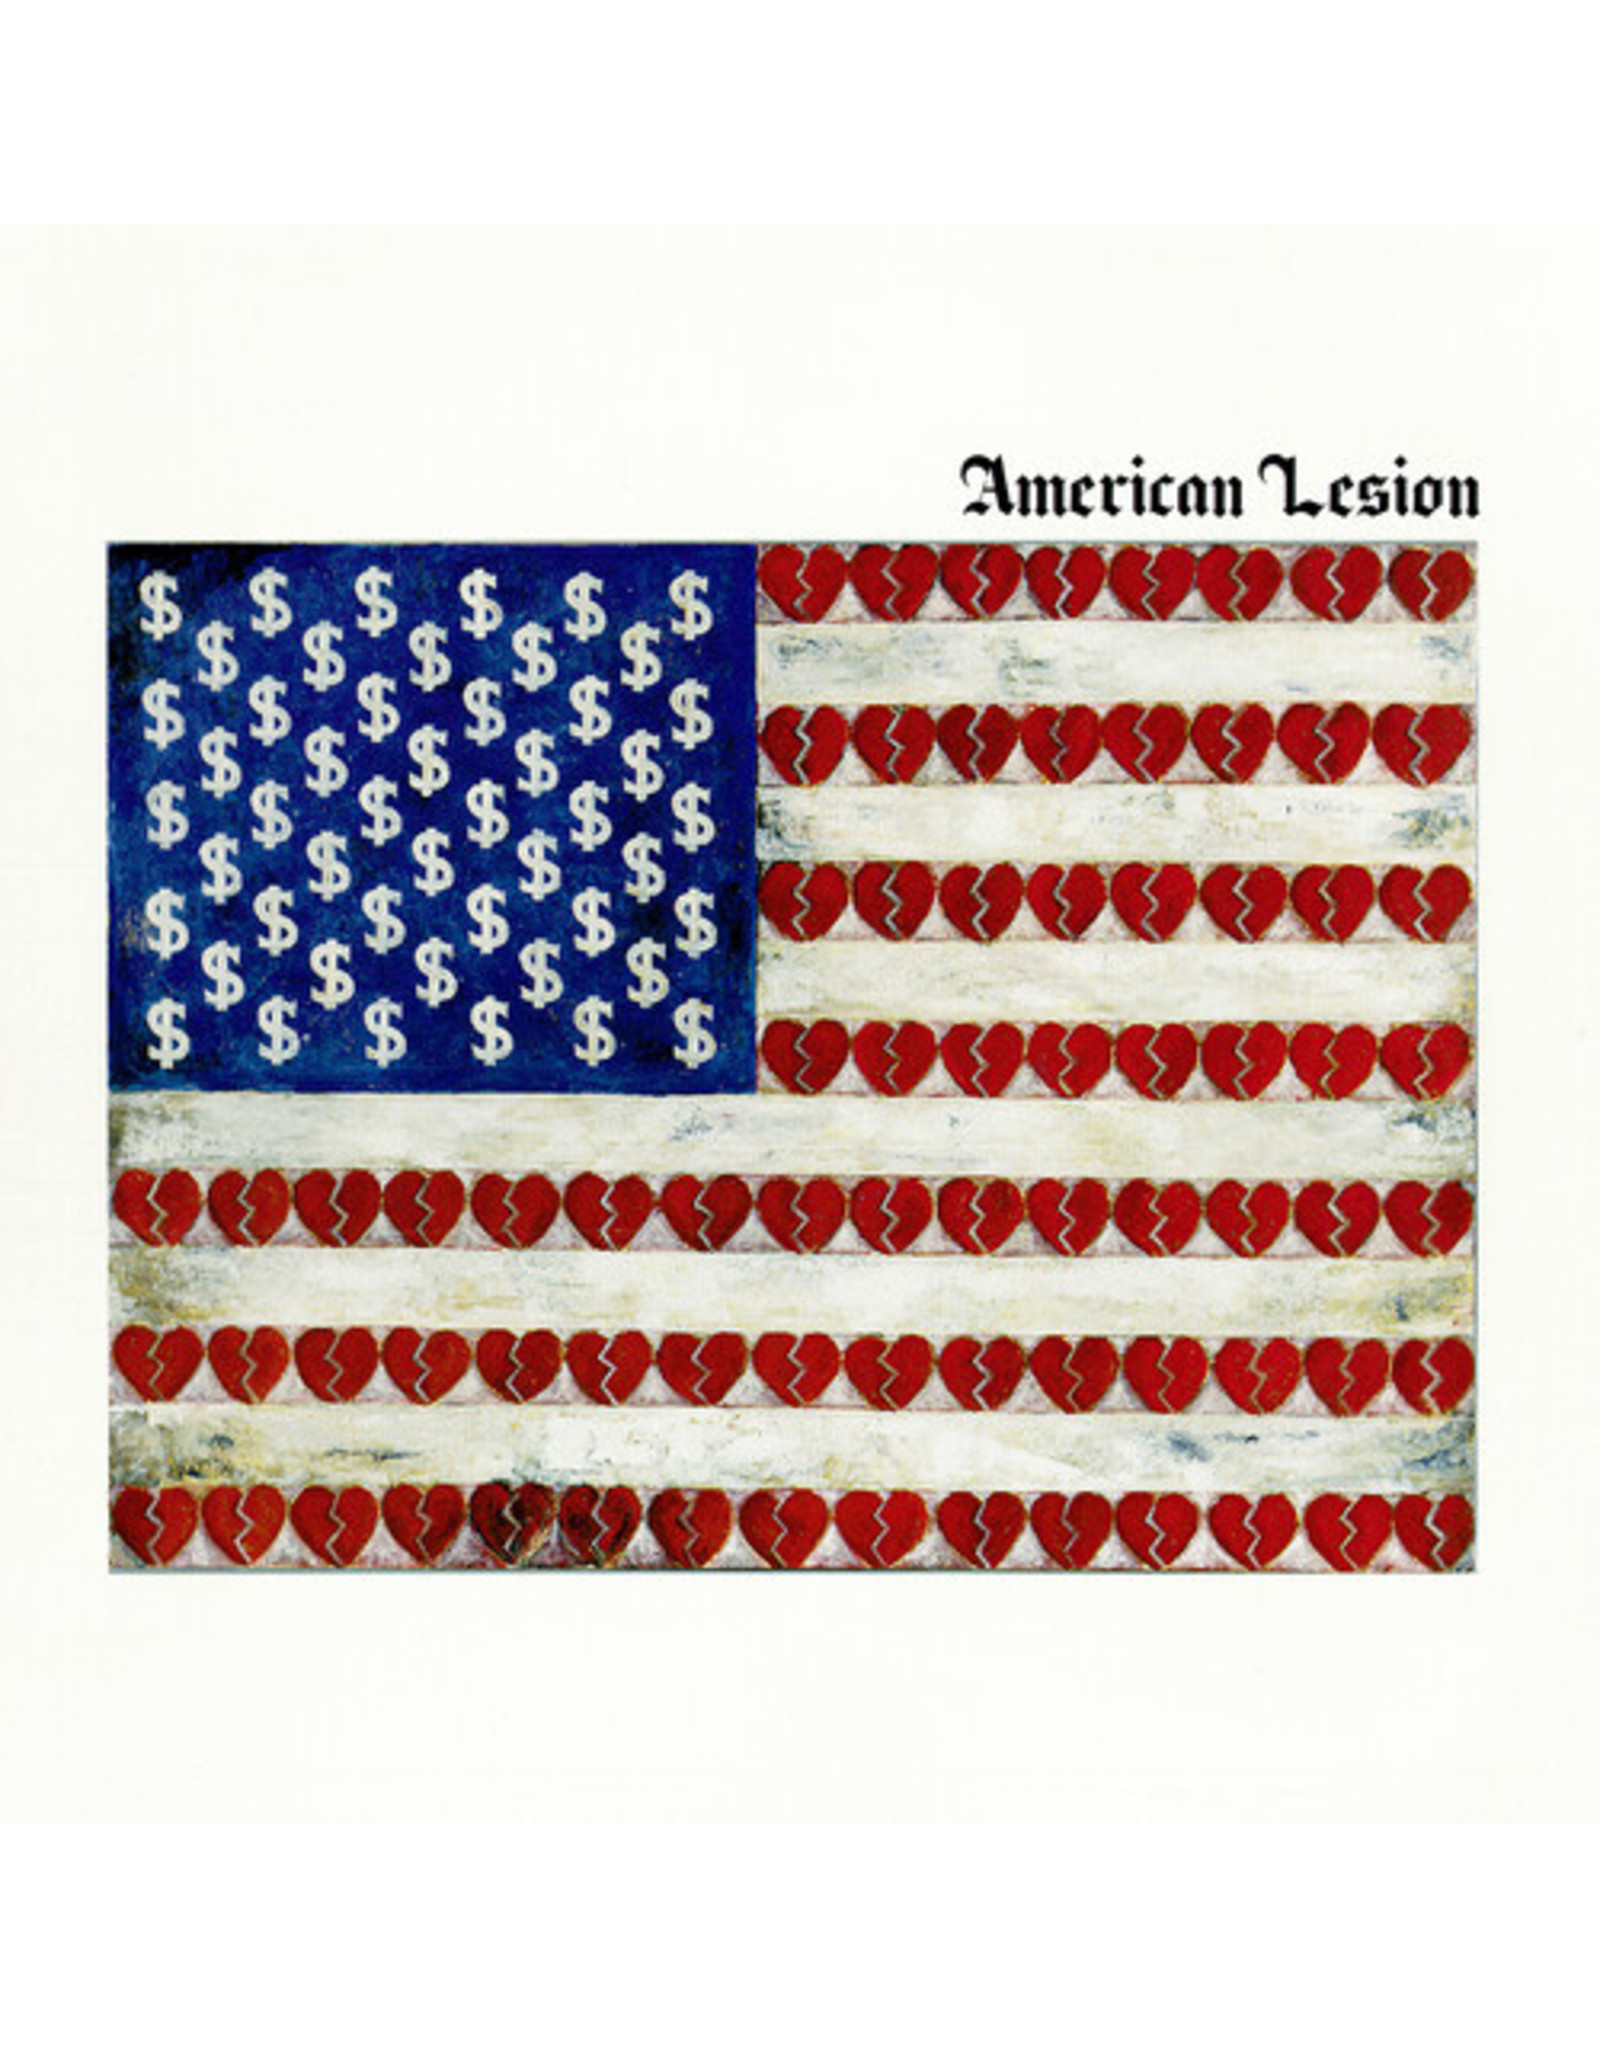 New Vinyl Greg Graffin - American Lesion (Colored) LP